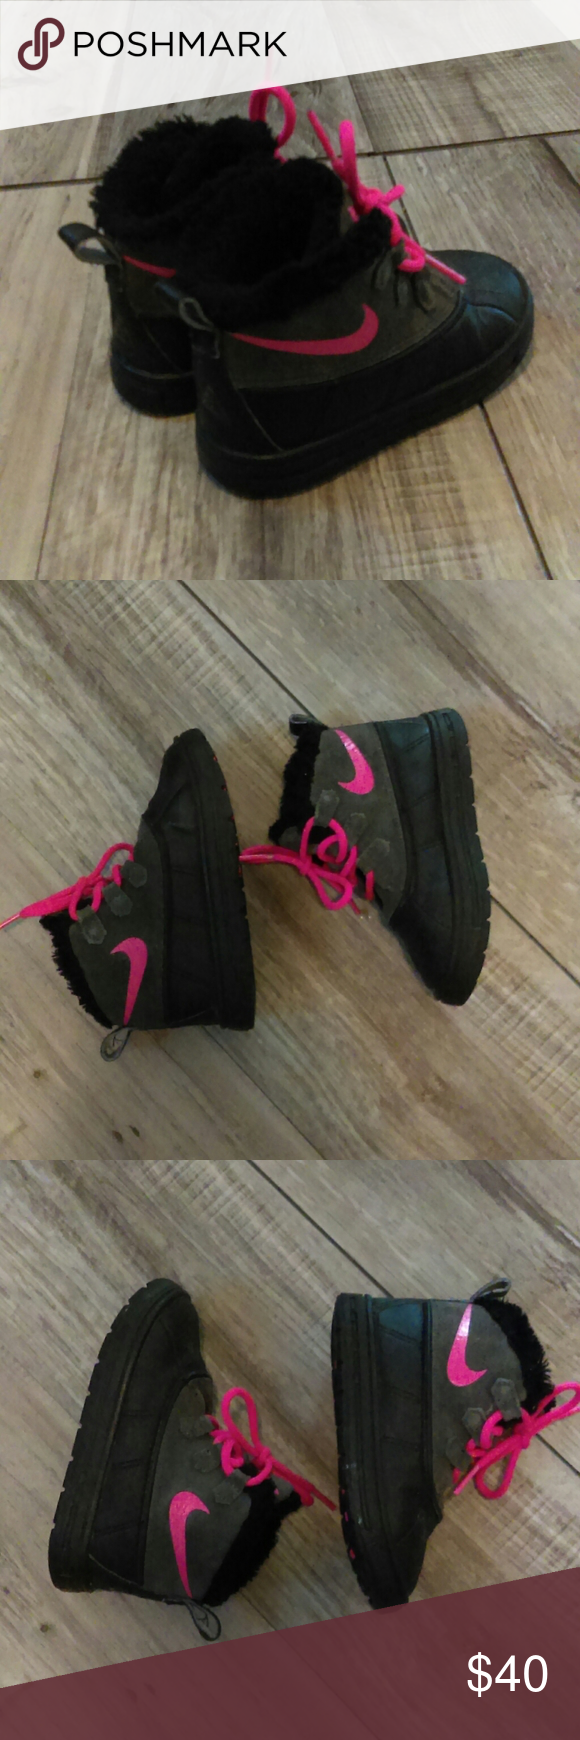 Nike Boots Used but in good condition girls pink , gray and black Nike boots wit...